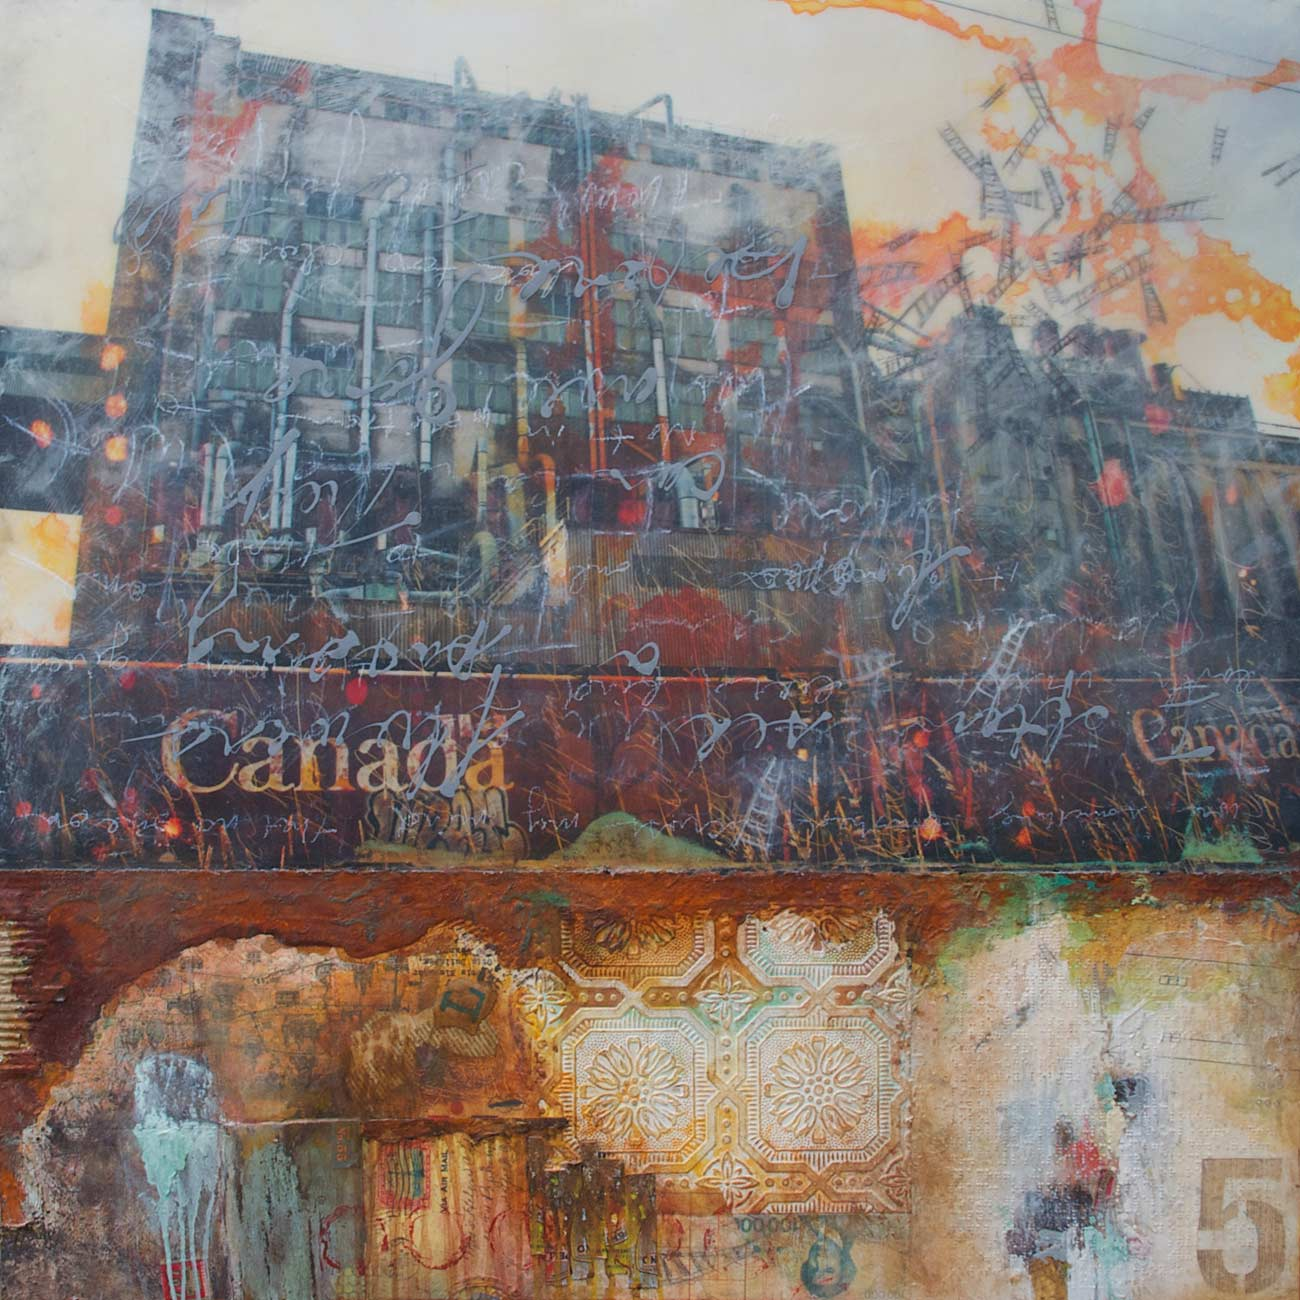 "A Passing Glimpse, 2013, mixed media on wood, 36"" x 36"", SOLD"